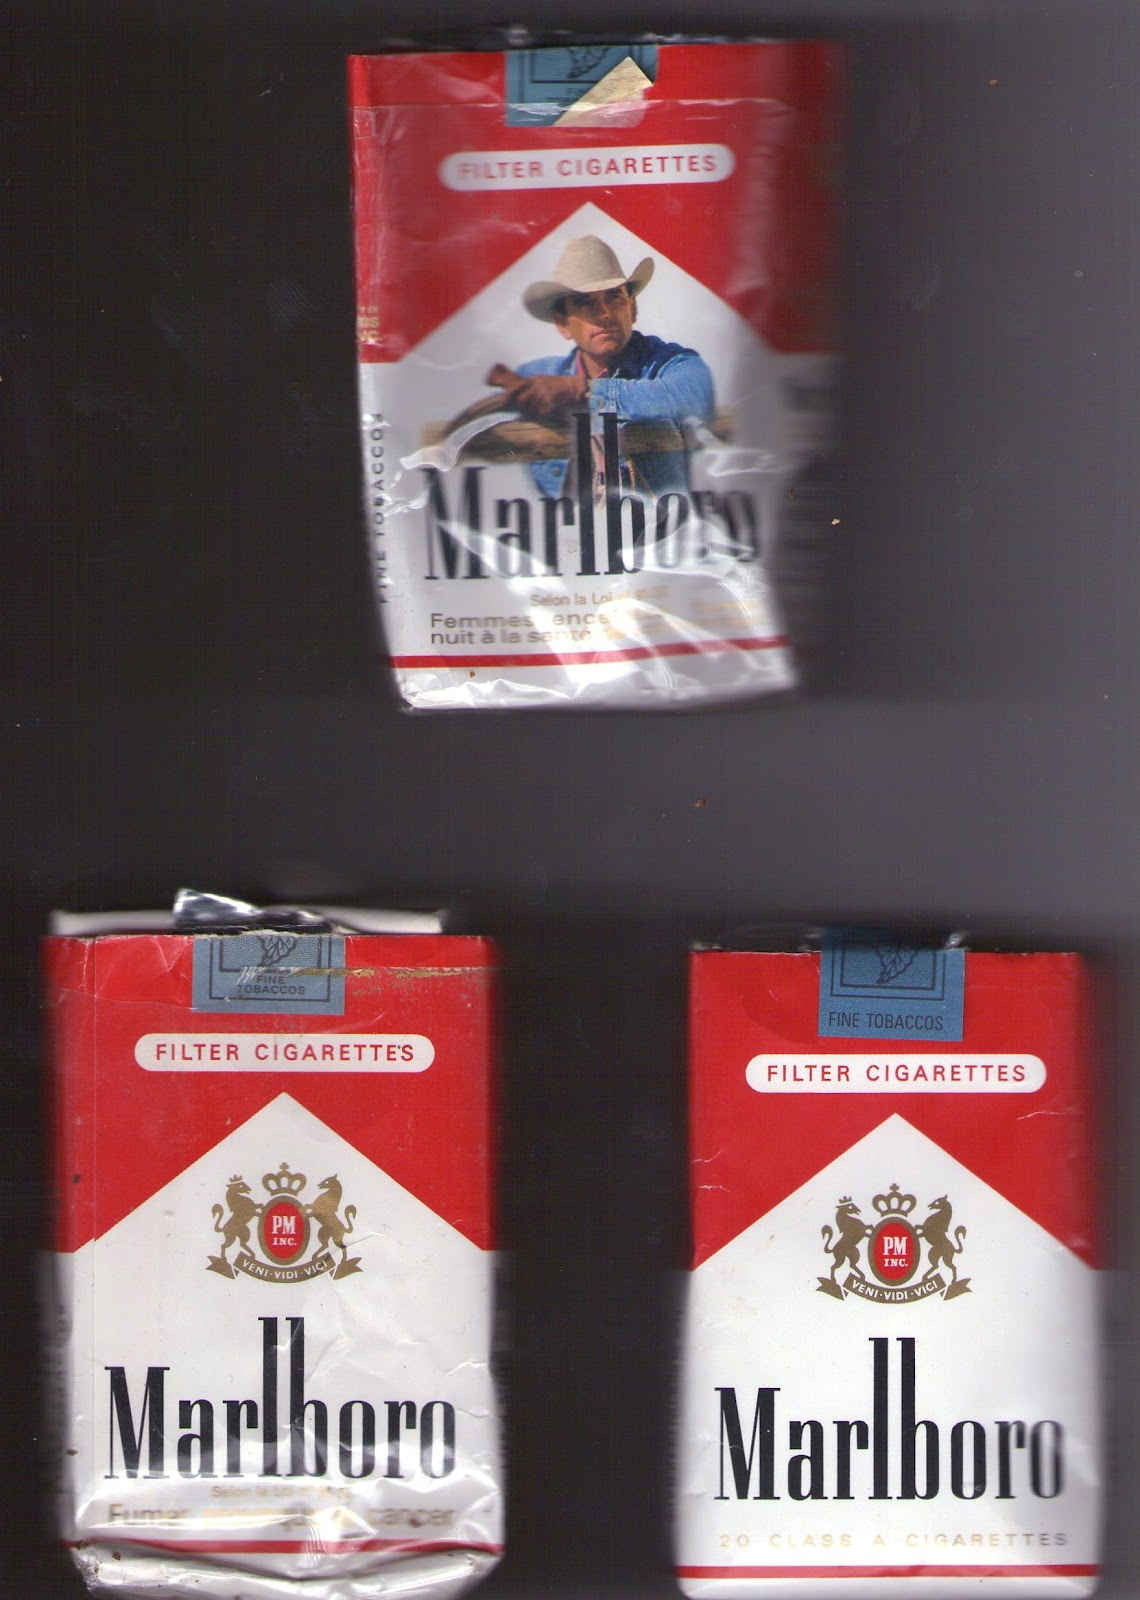 Marlboro cigarettes for women